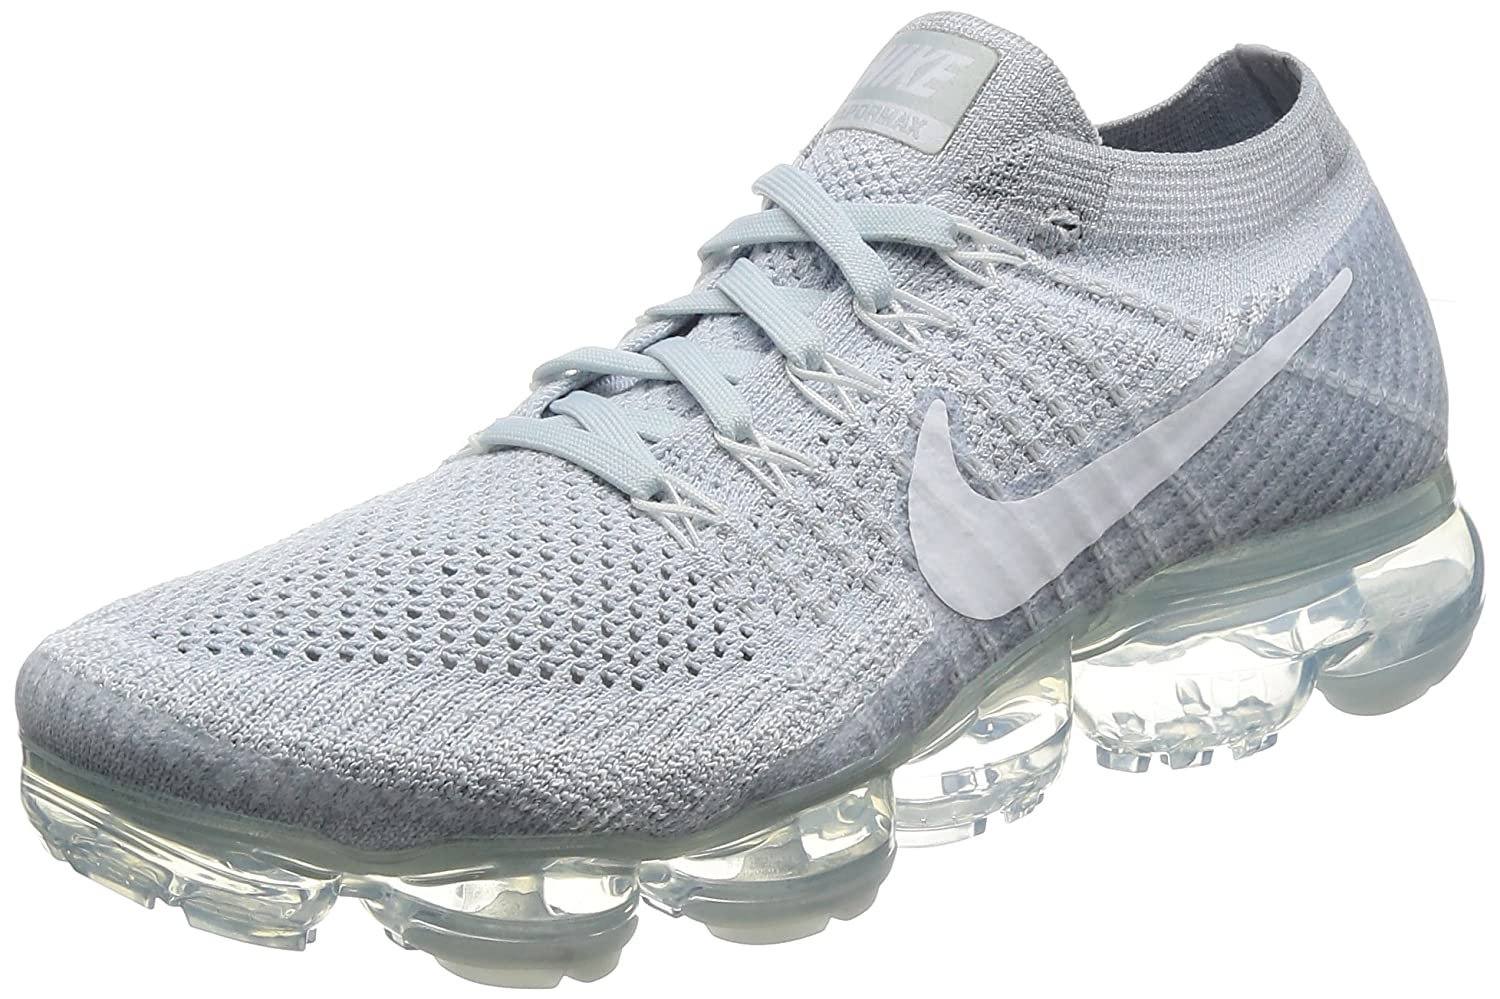 2d574b4305 Amazon.com | Men's Nike Air Vapormax Flyknit Running Shoe | Fashion Sneakers